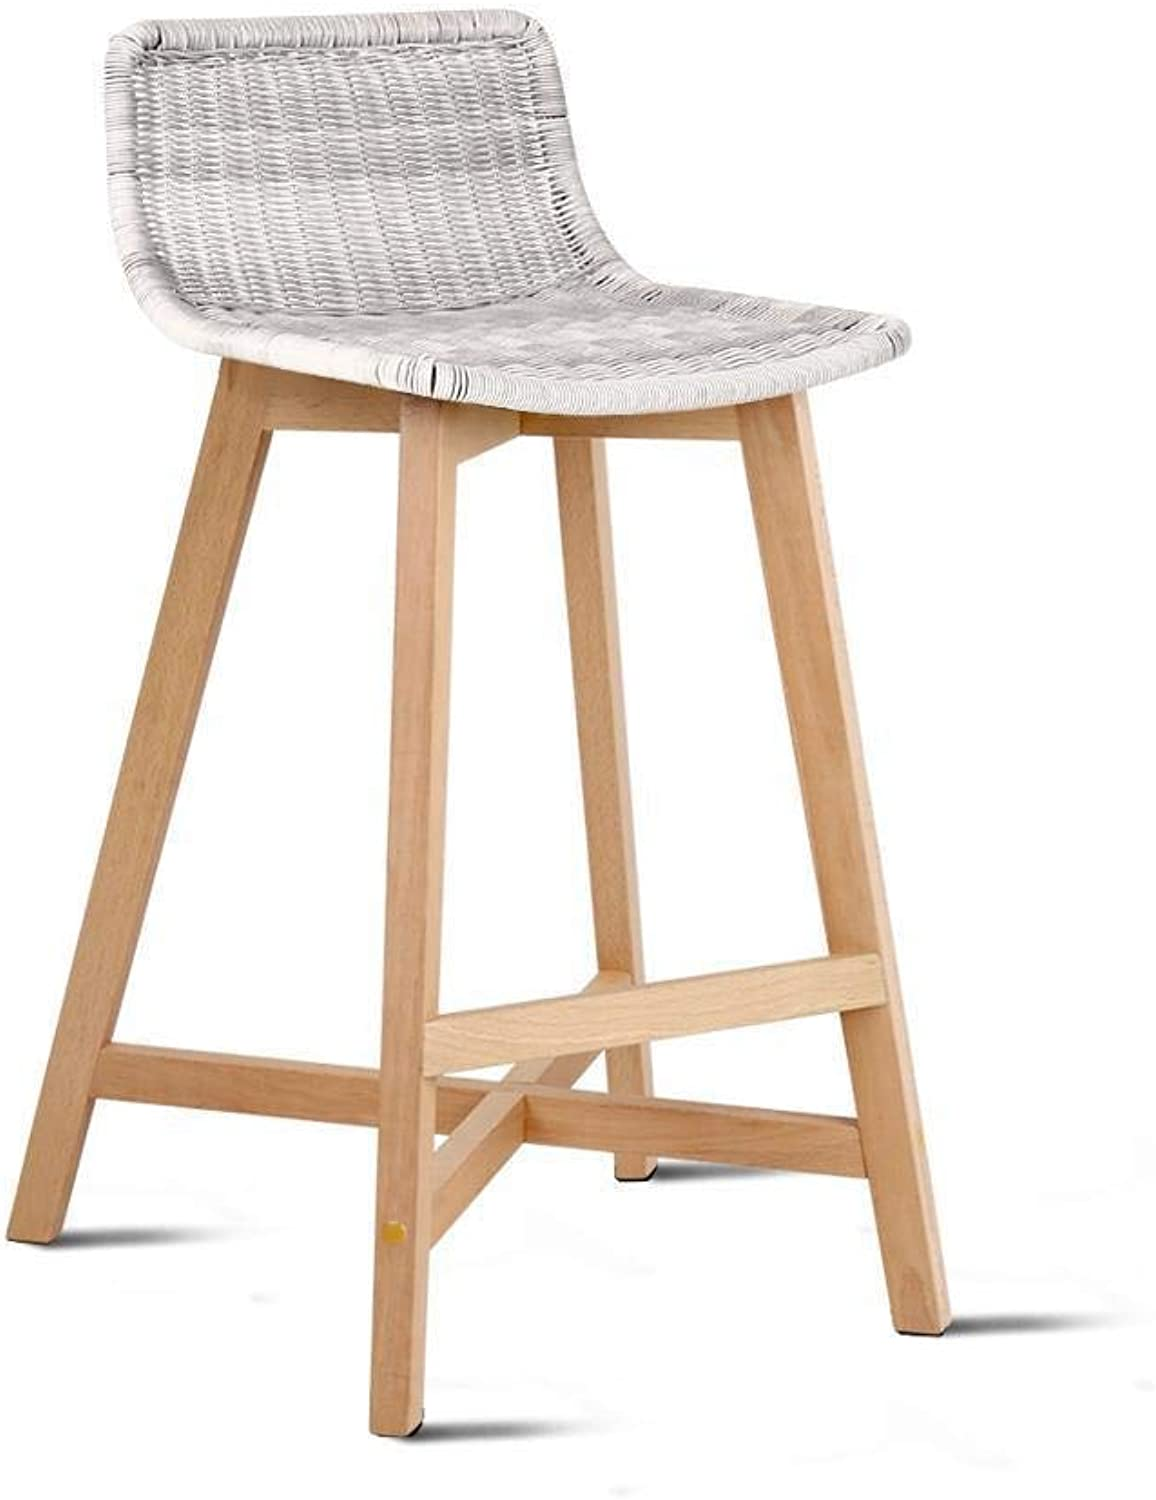 2 x Artiss Bar Stool Rattan Counter Bar Chair Wicker Wooden Kitchen Dining Stool, Offwhite